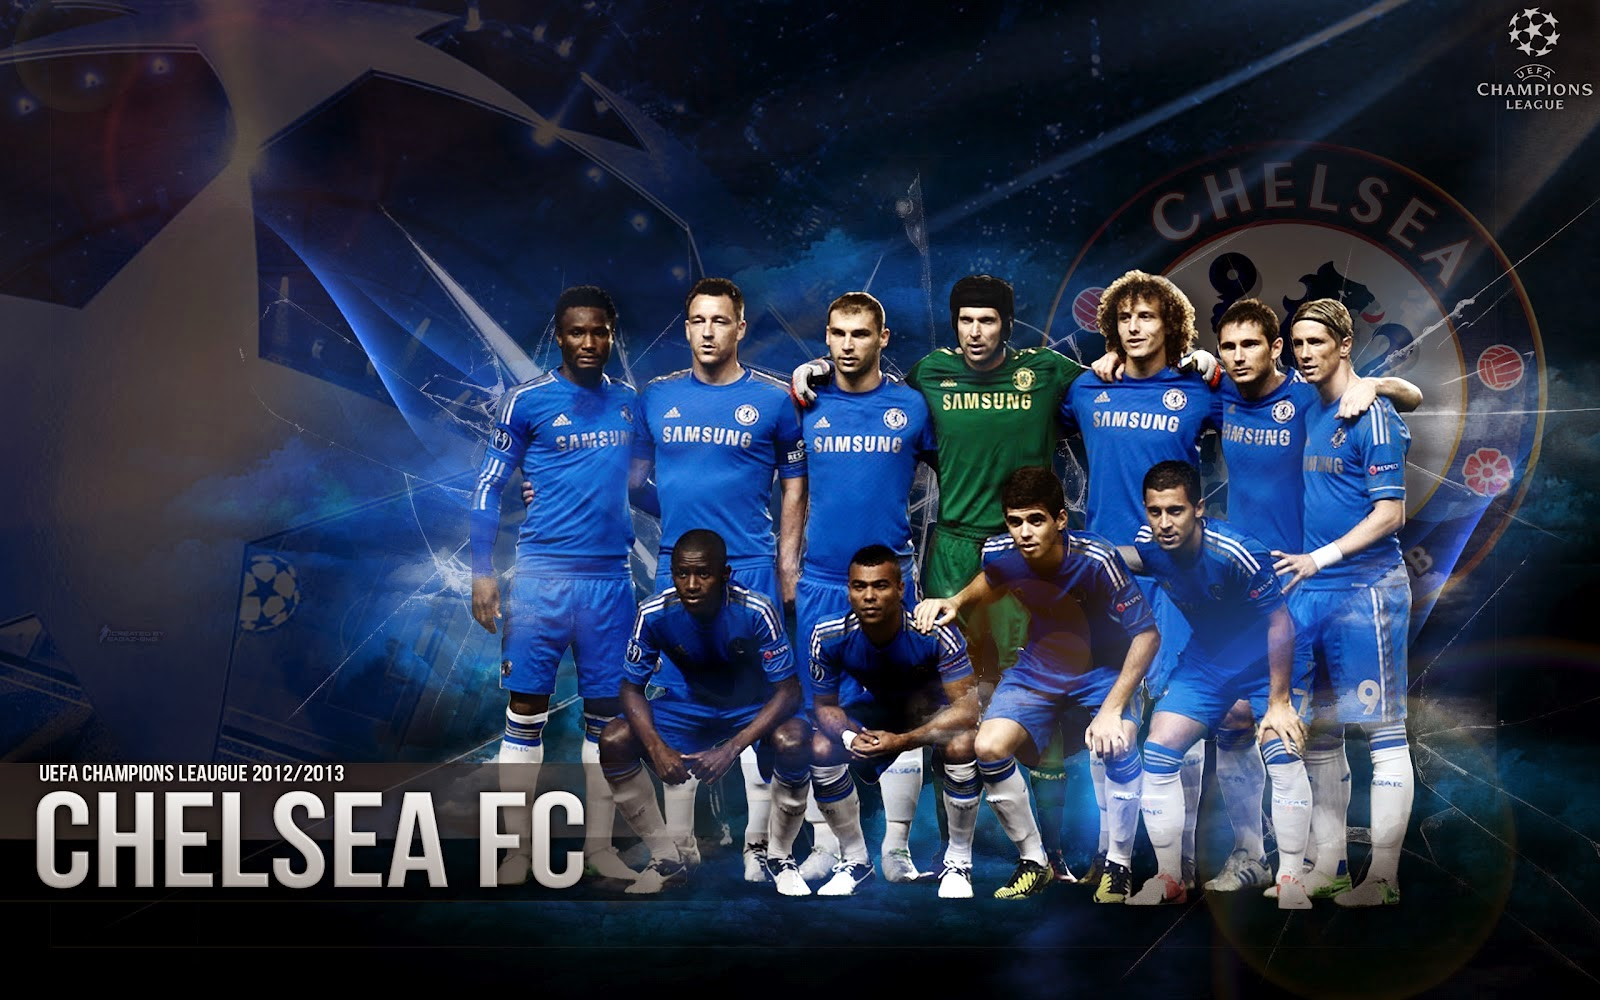 chelsea hd wallpapers for mobile